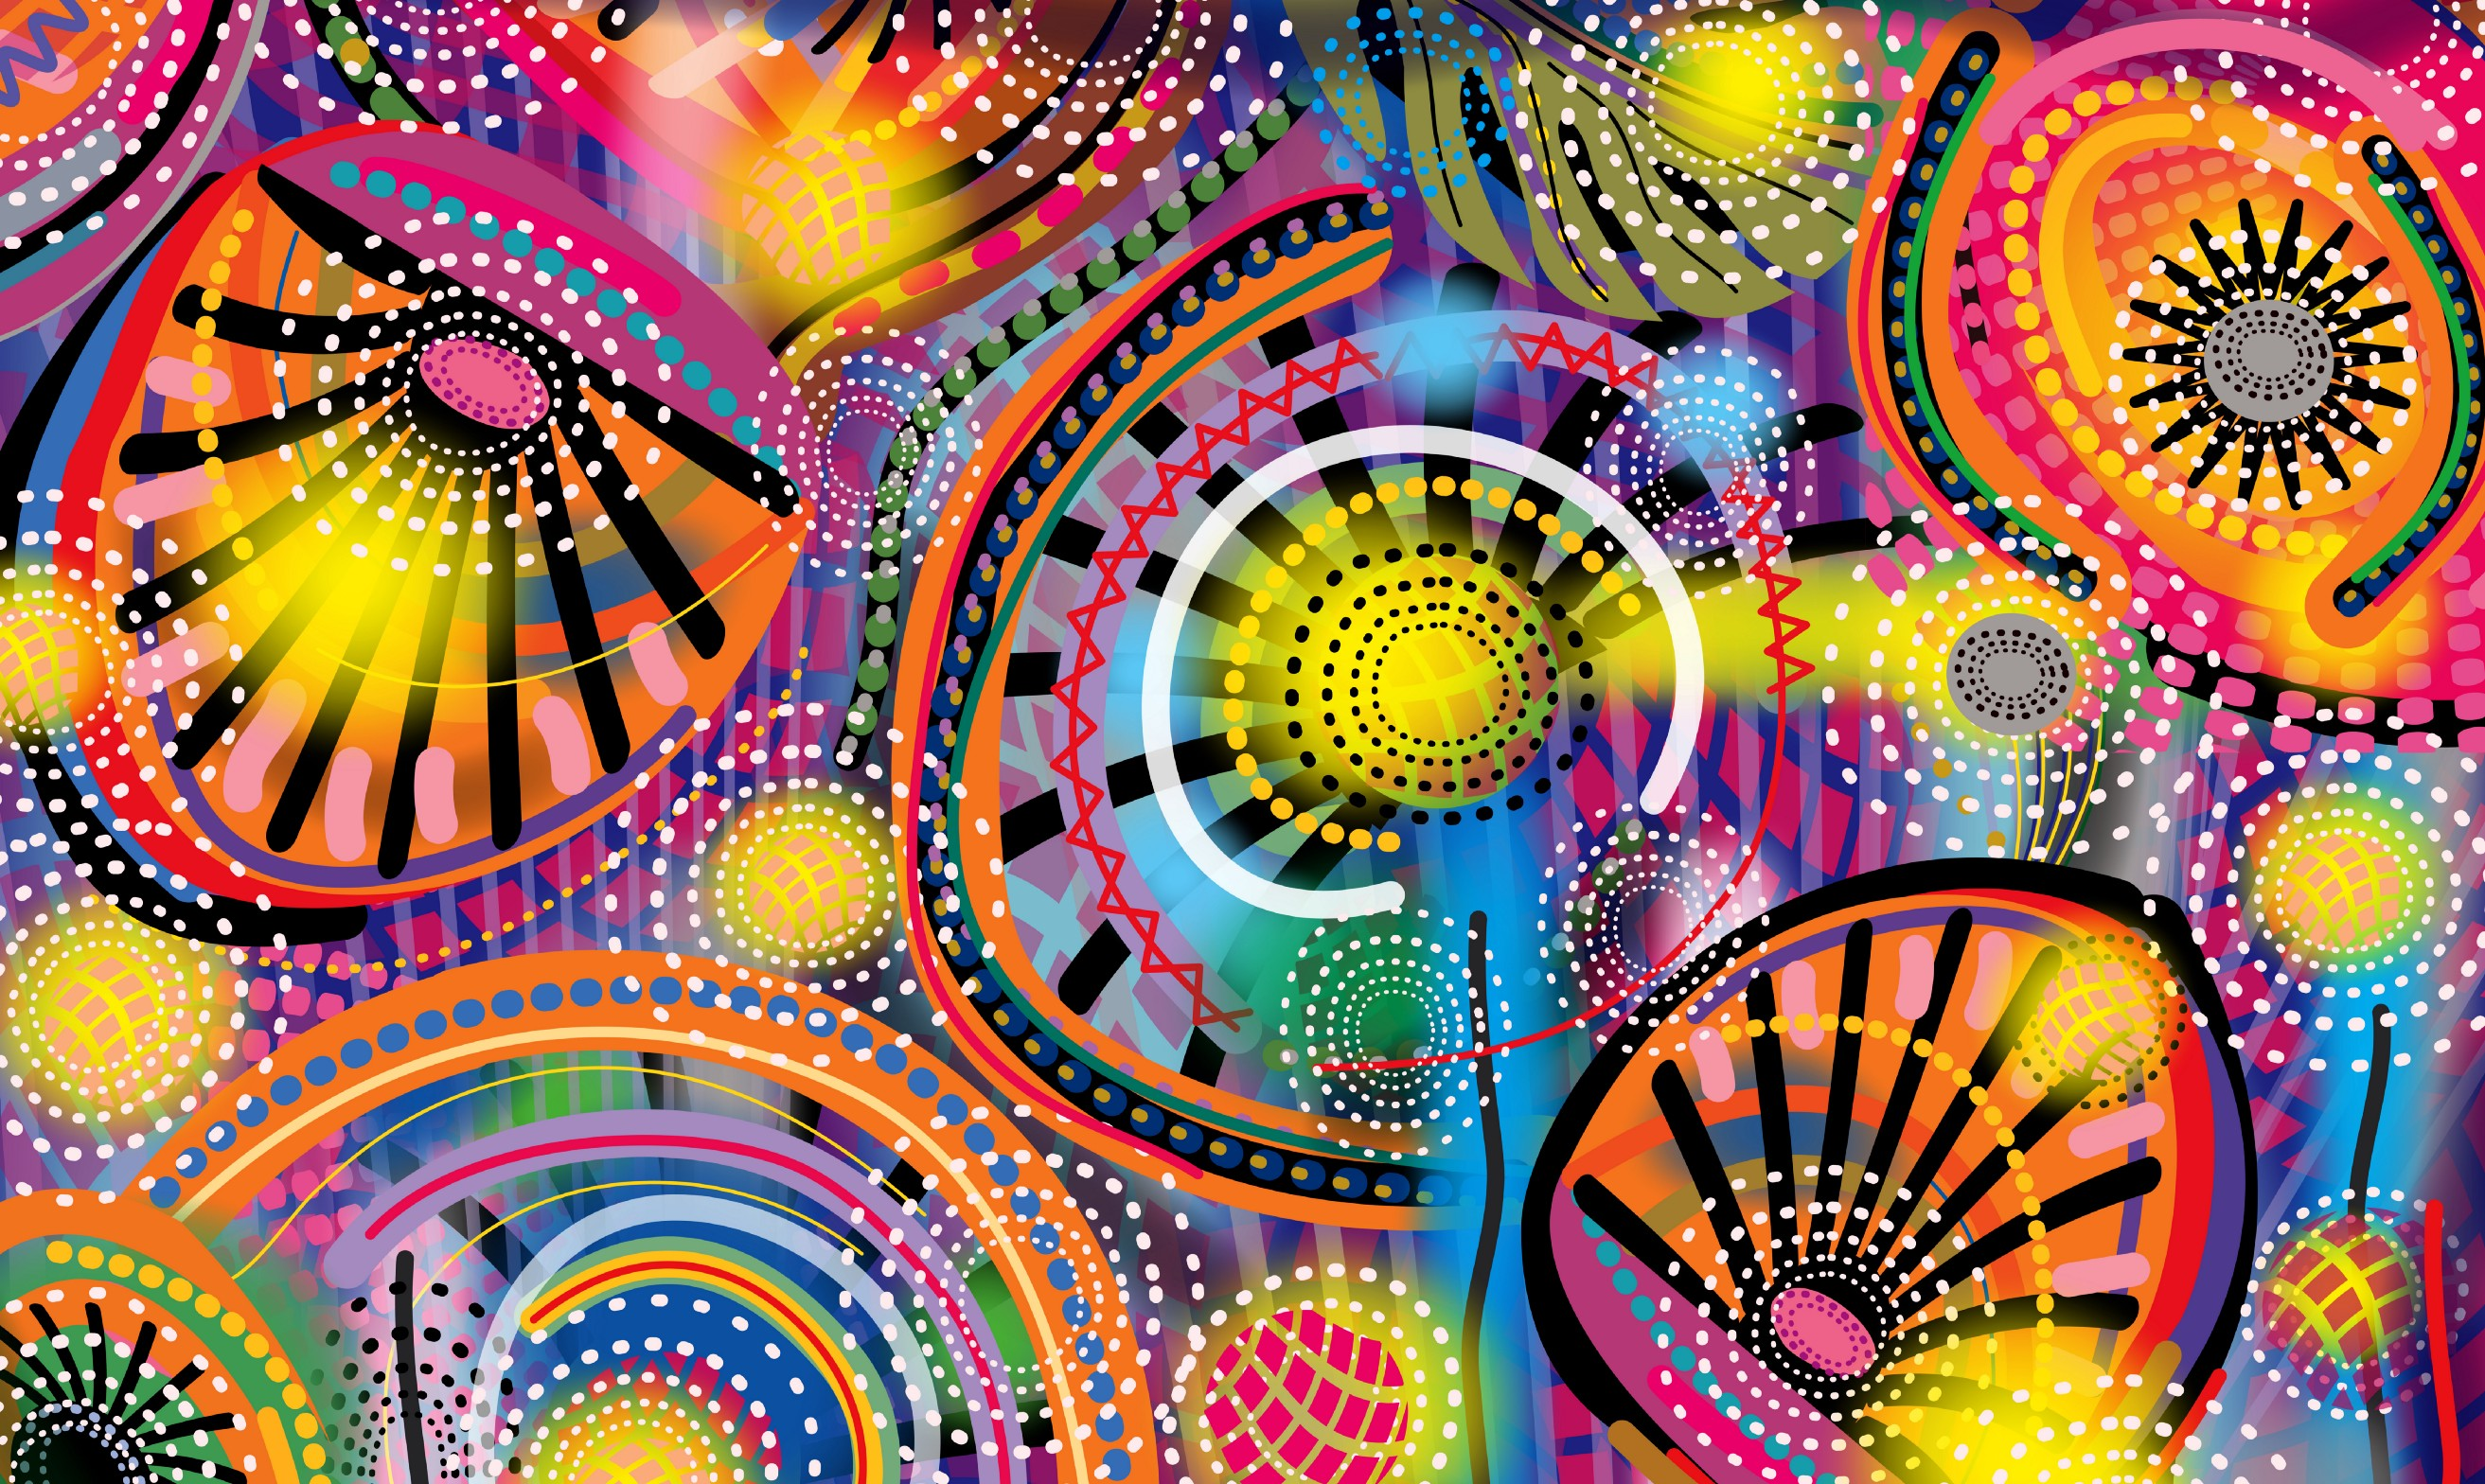 Will Oakland Lead the Psychedelic Revolution? - The Bold Italic